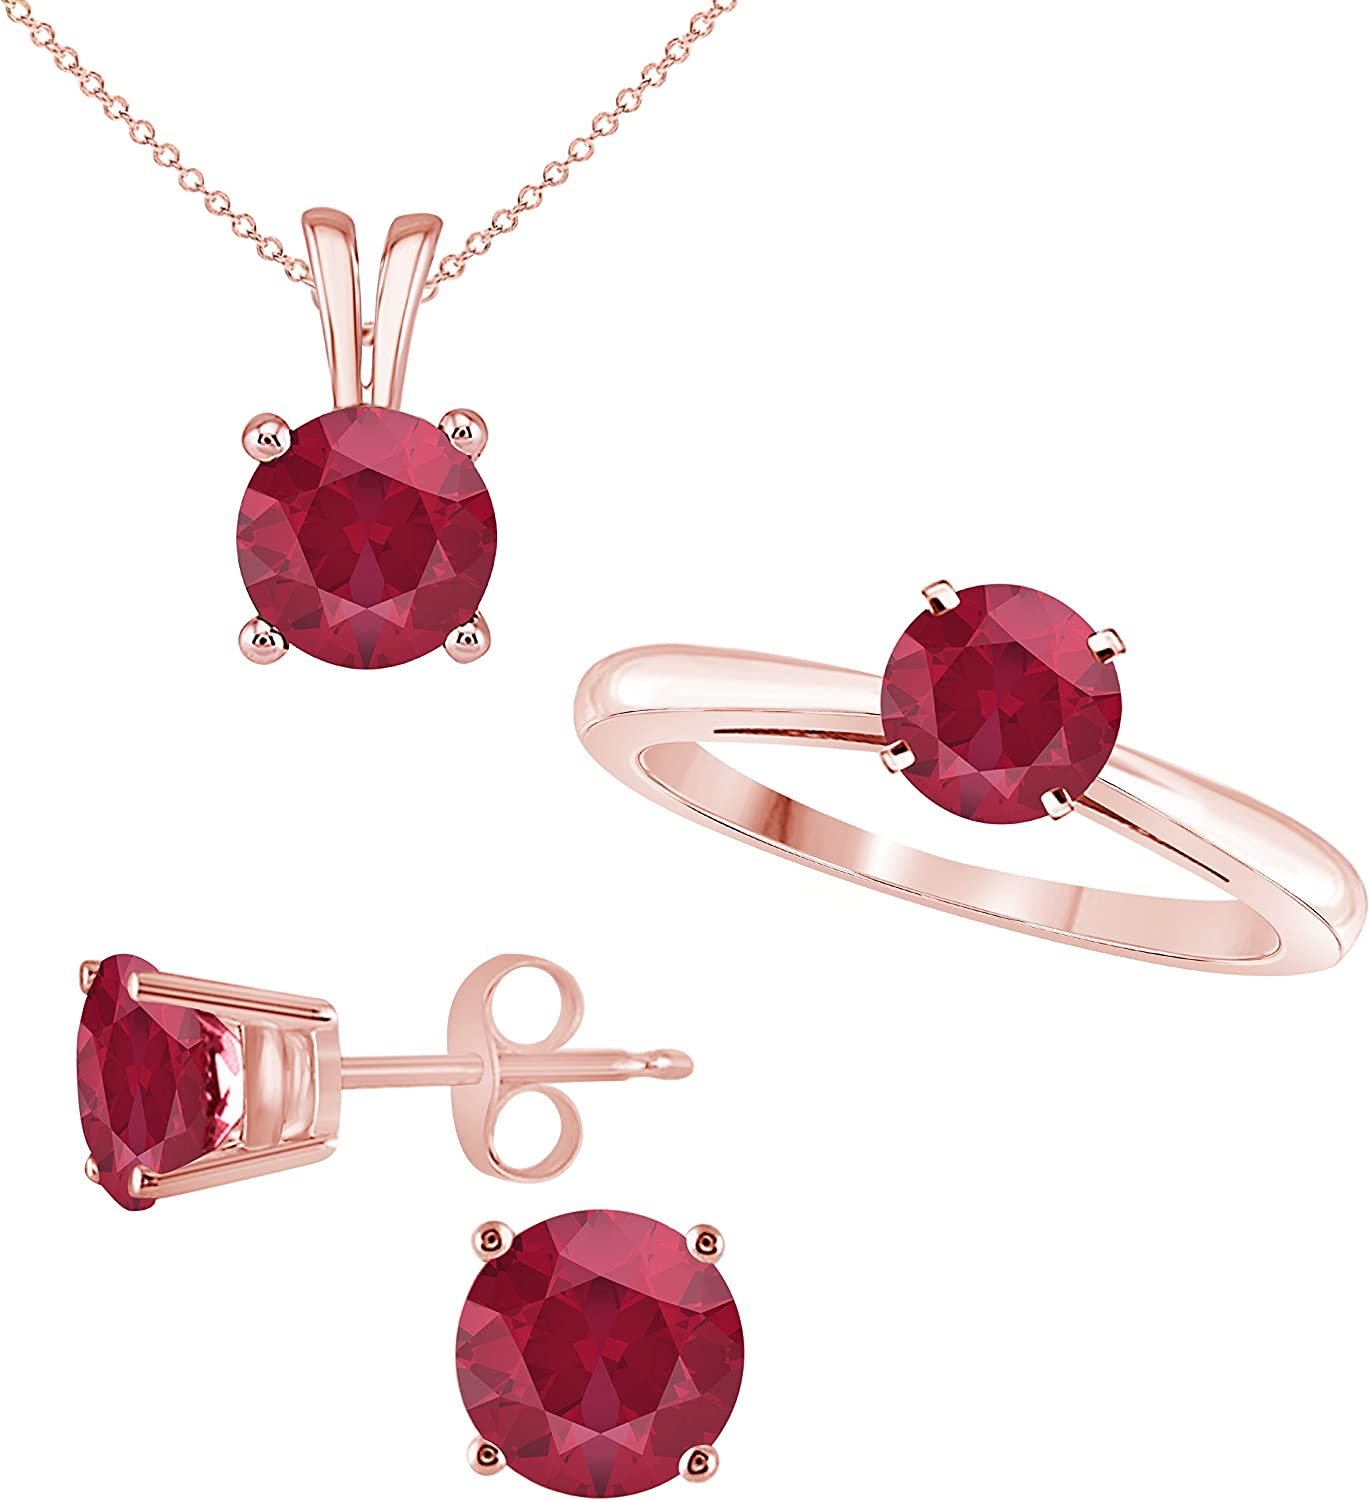 Star Retail Gorgeous Beautiful Round Shape Brilliant Cut Lab Created Red Ruby Ring Pendant and matching Earrings Jewelry Set in 14K Rose Gold Finish